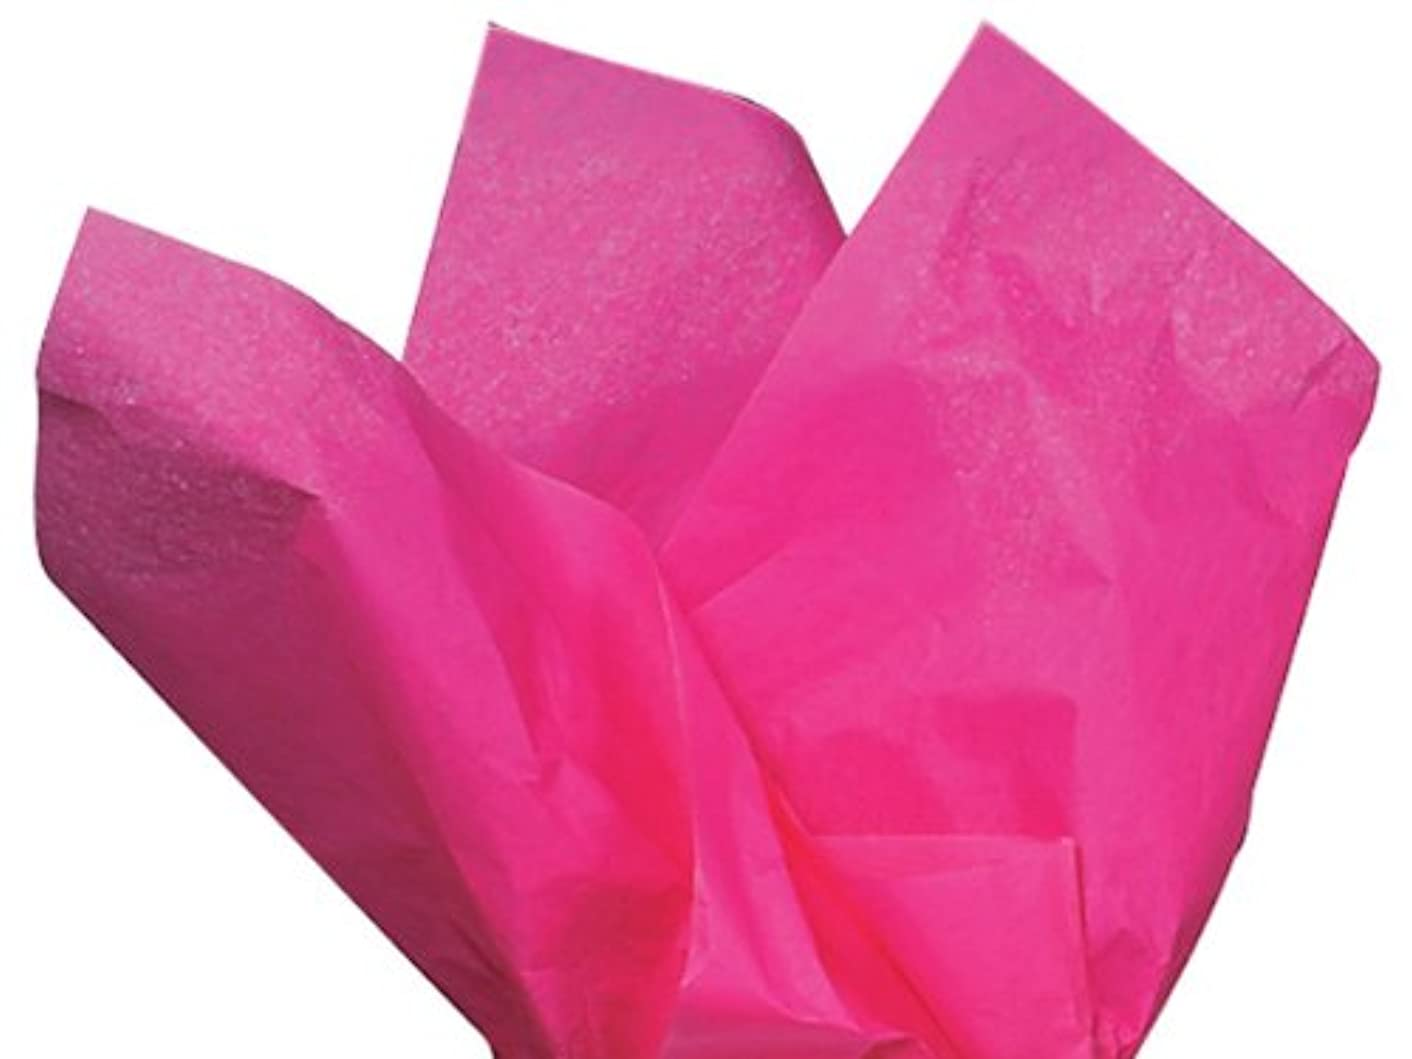 Hot Pink Tissue Paper 15 Inch X 20 Inch - 100 Sheets